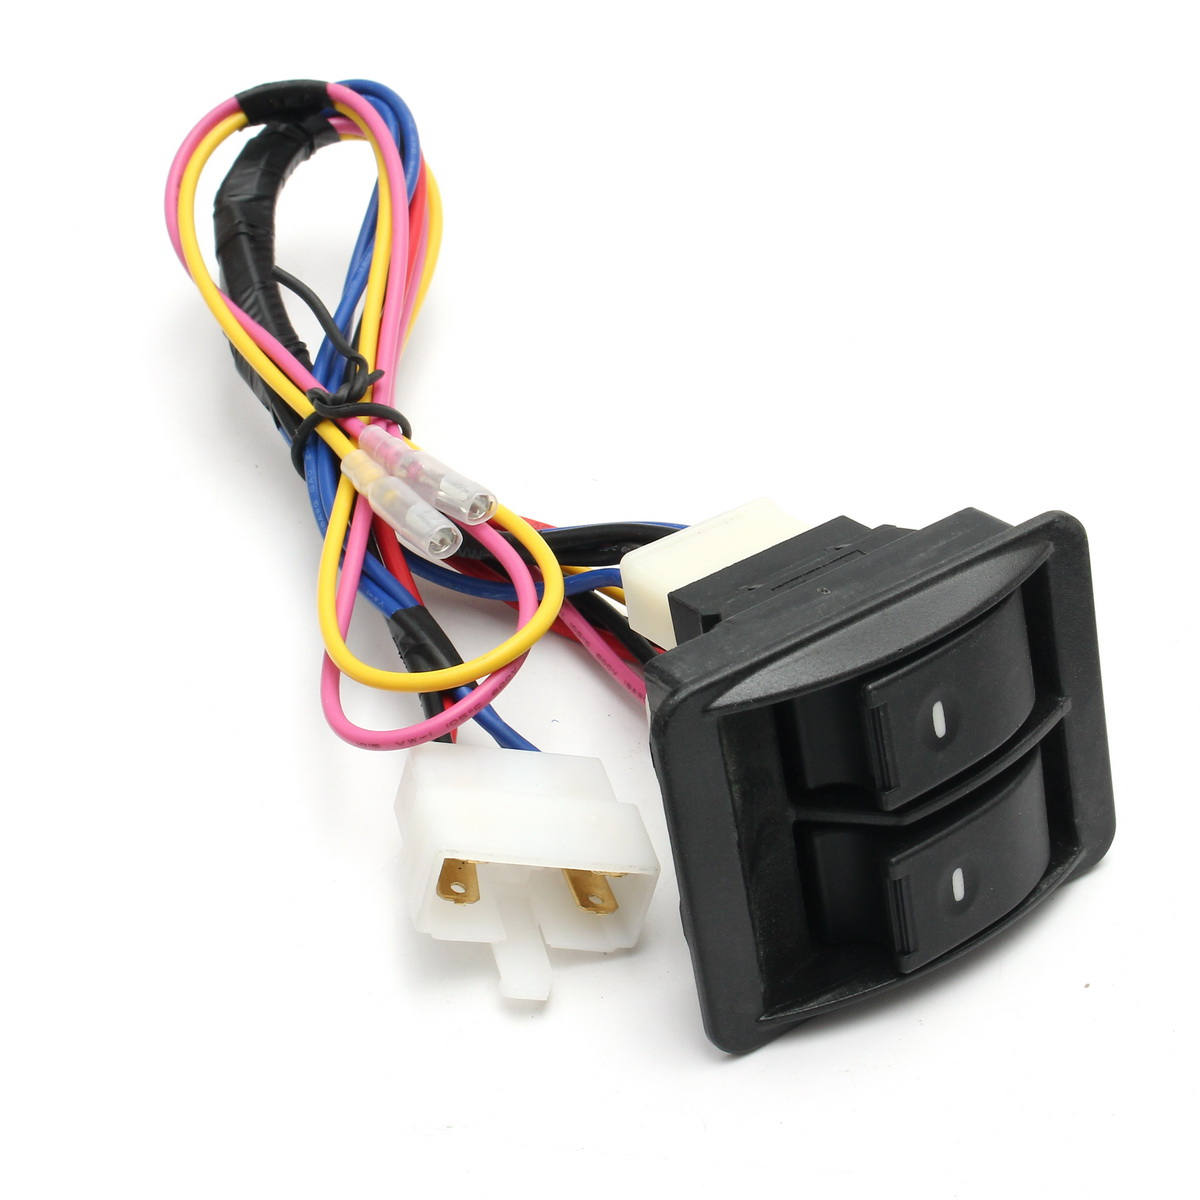 small resolution of universal 12v power window glass lock rocker lift switch wiring harness kits for chevrolet ford hyundai nissan toyota vw in car switches relays from